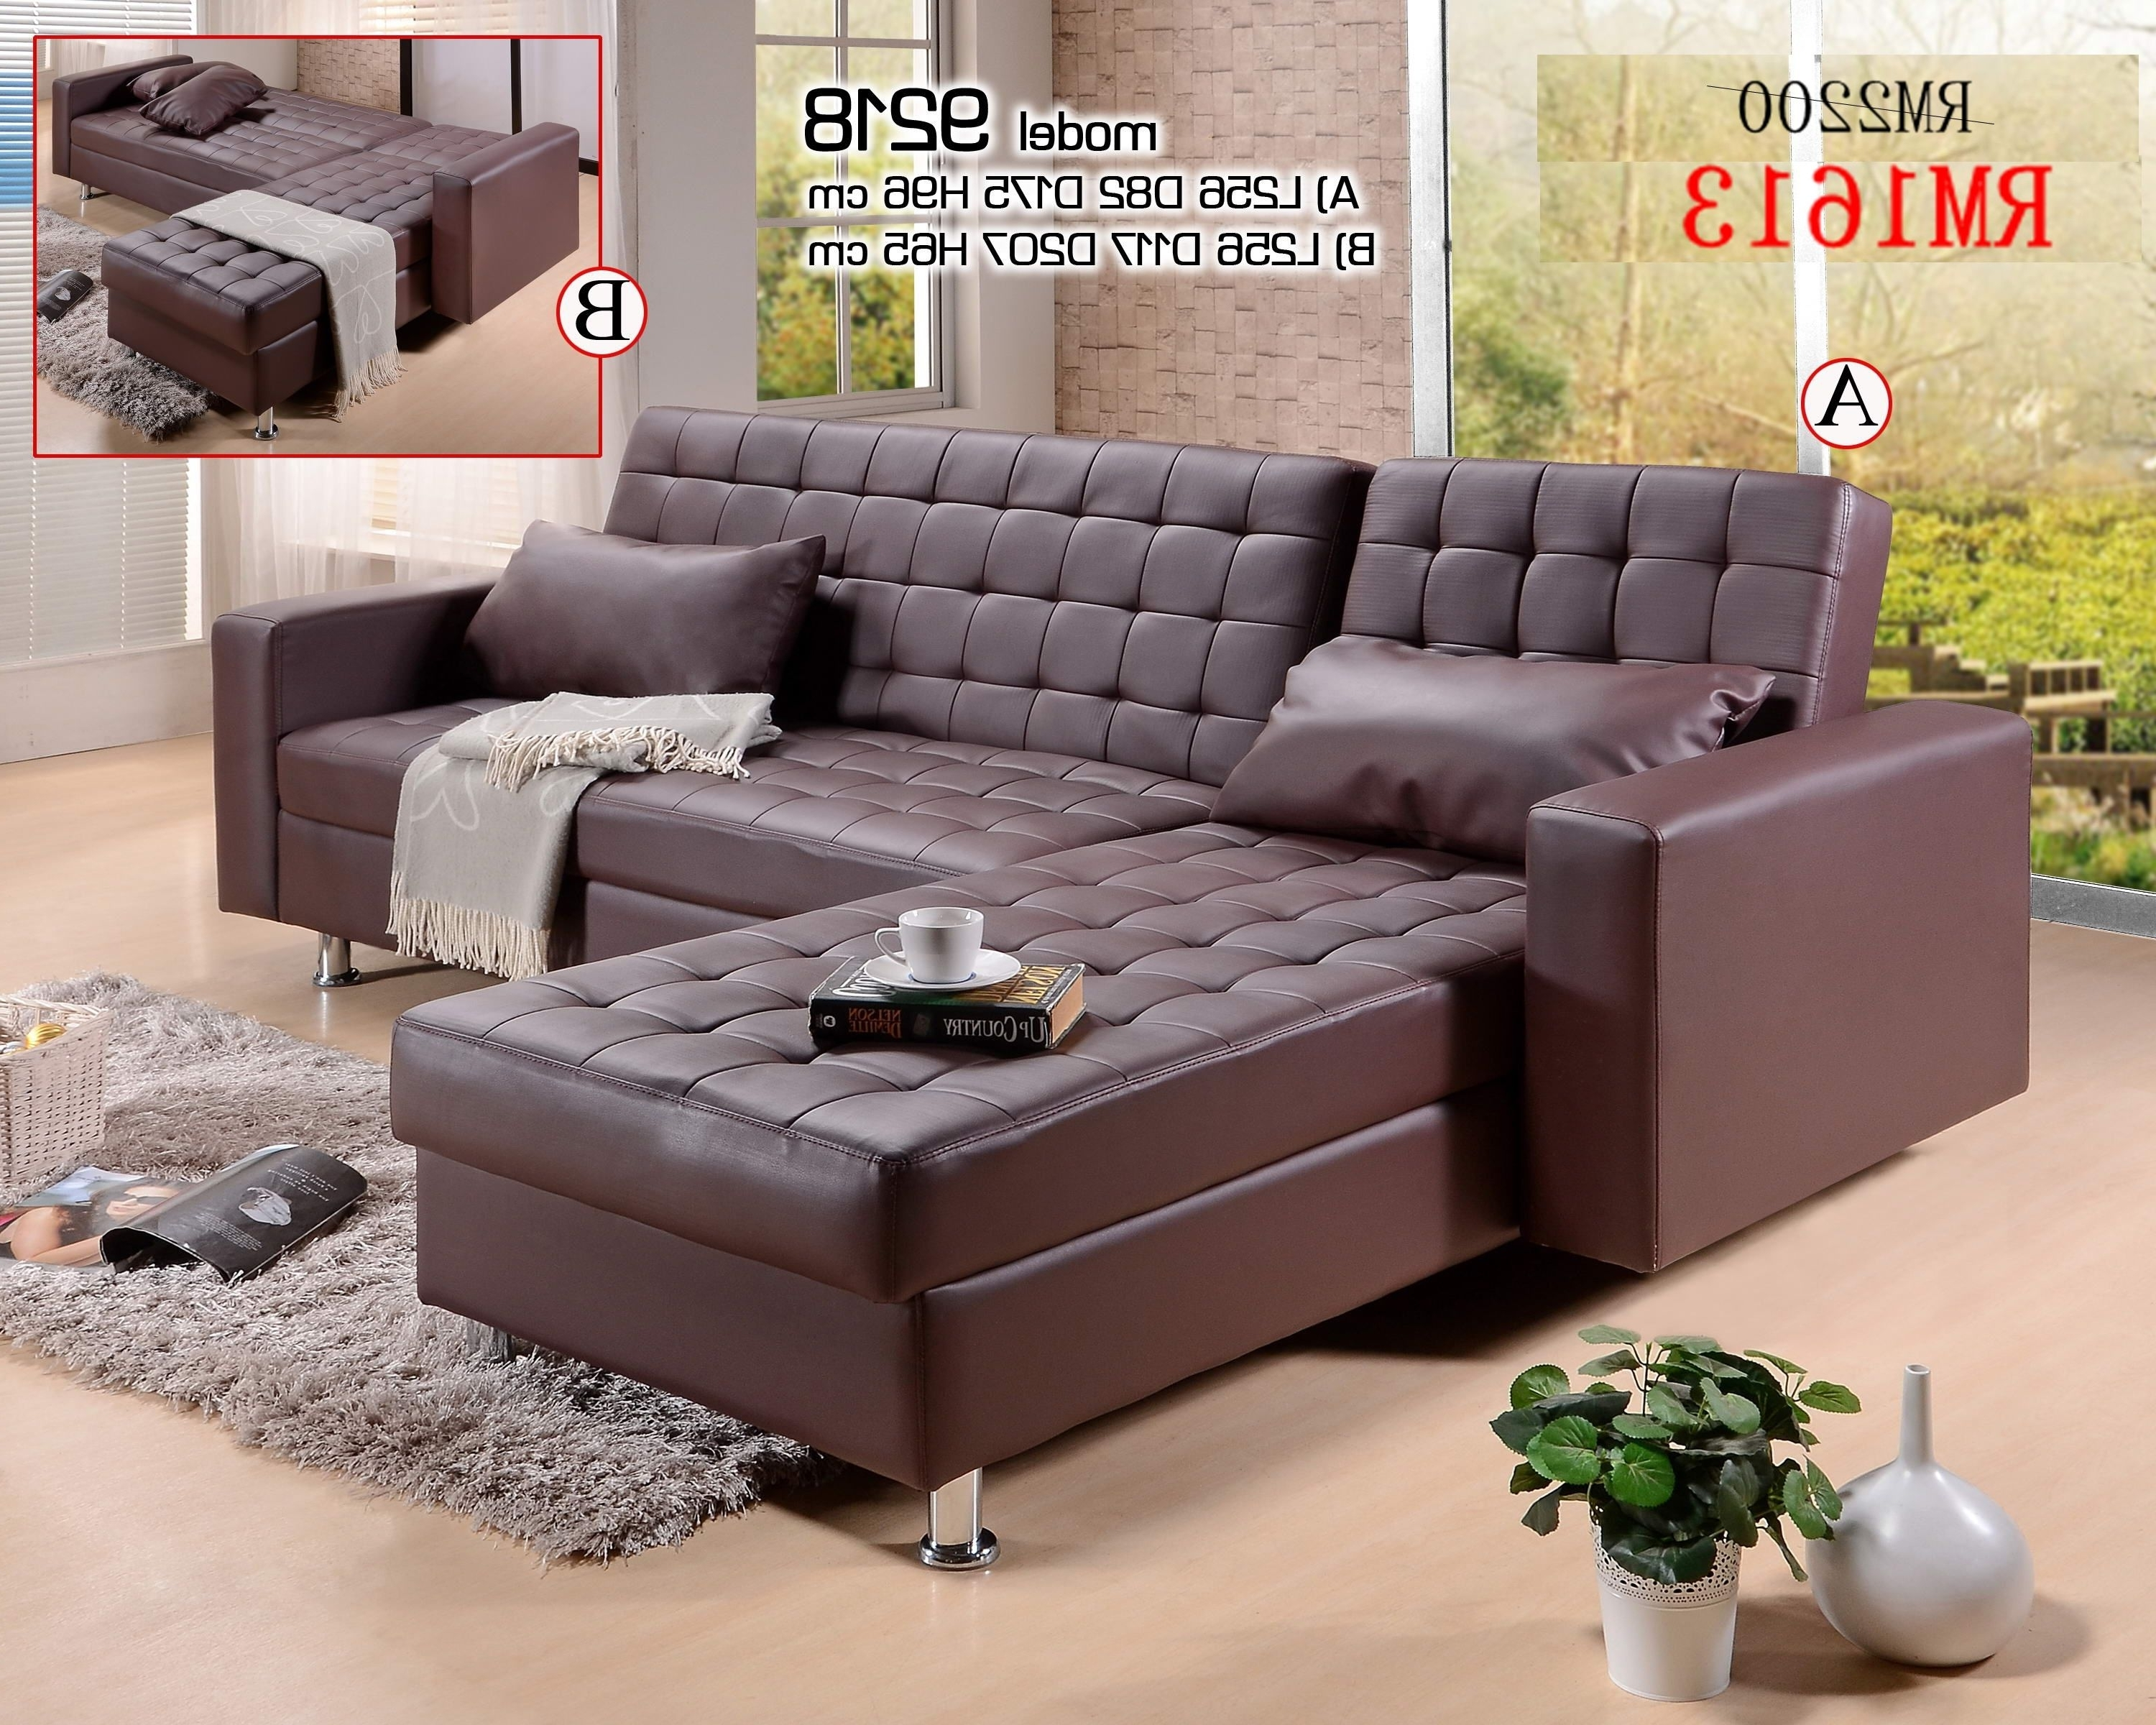 L Shaped Sofas Within Current L Shaped Sofa Bed, Sofa Bed Sale, Sofa Bed In Malaysia, Sofa Katil (View 18 of 20)